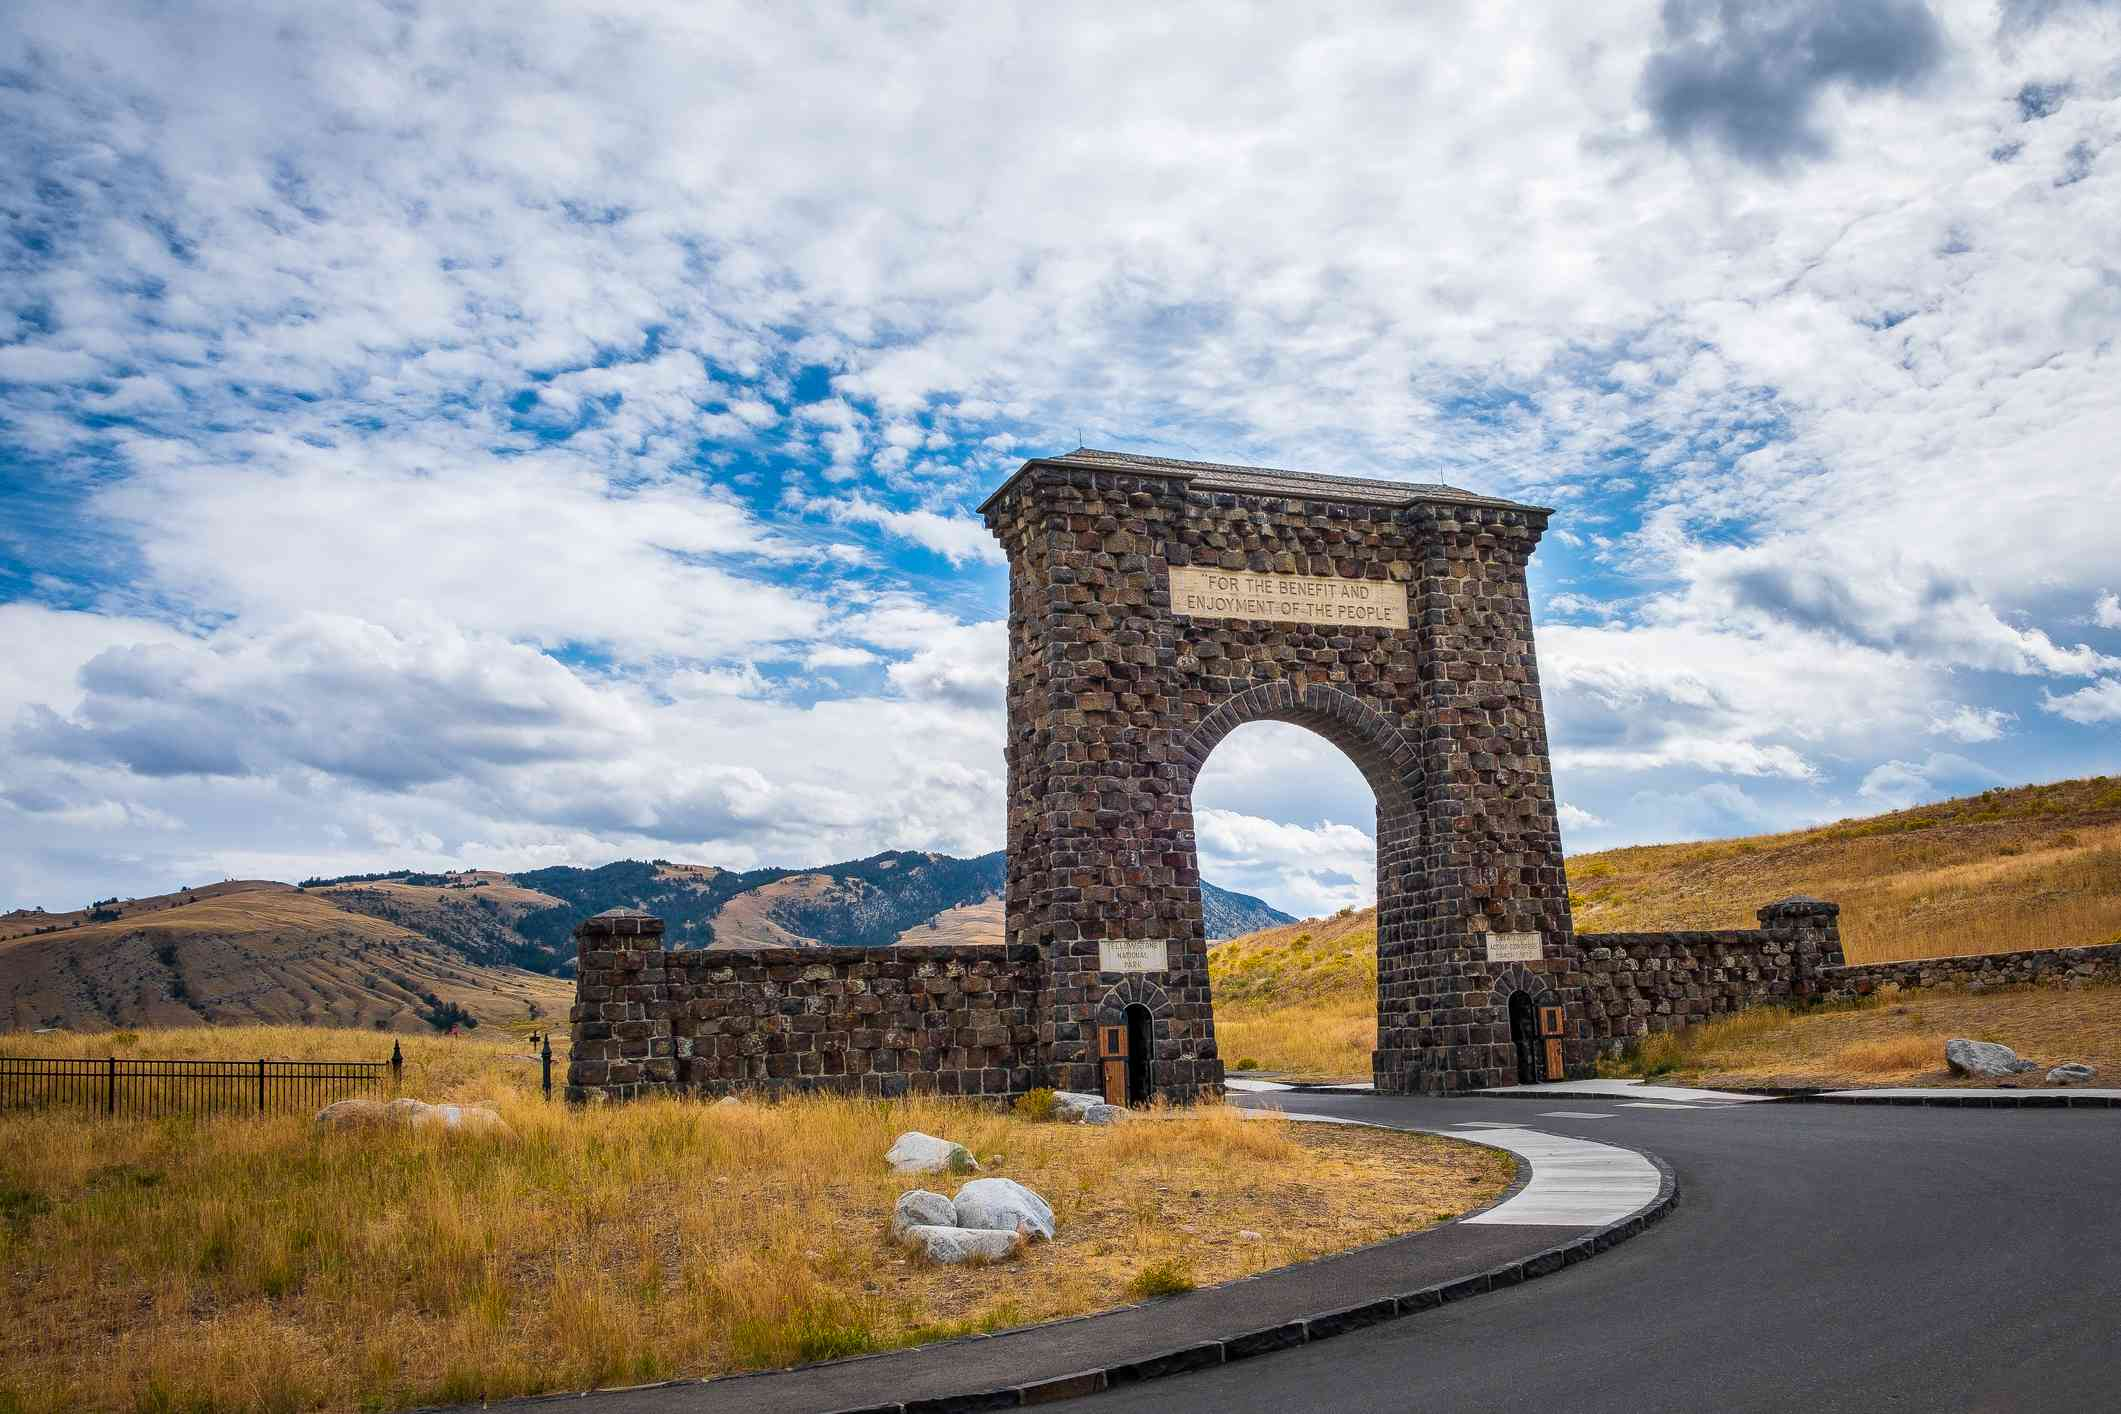 View of Roosevelt Arch with hills in the background